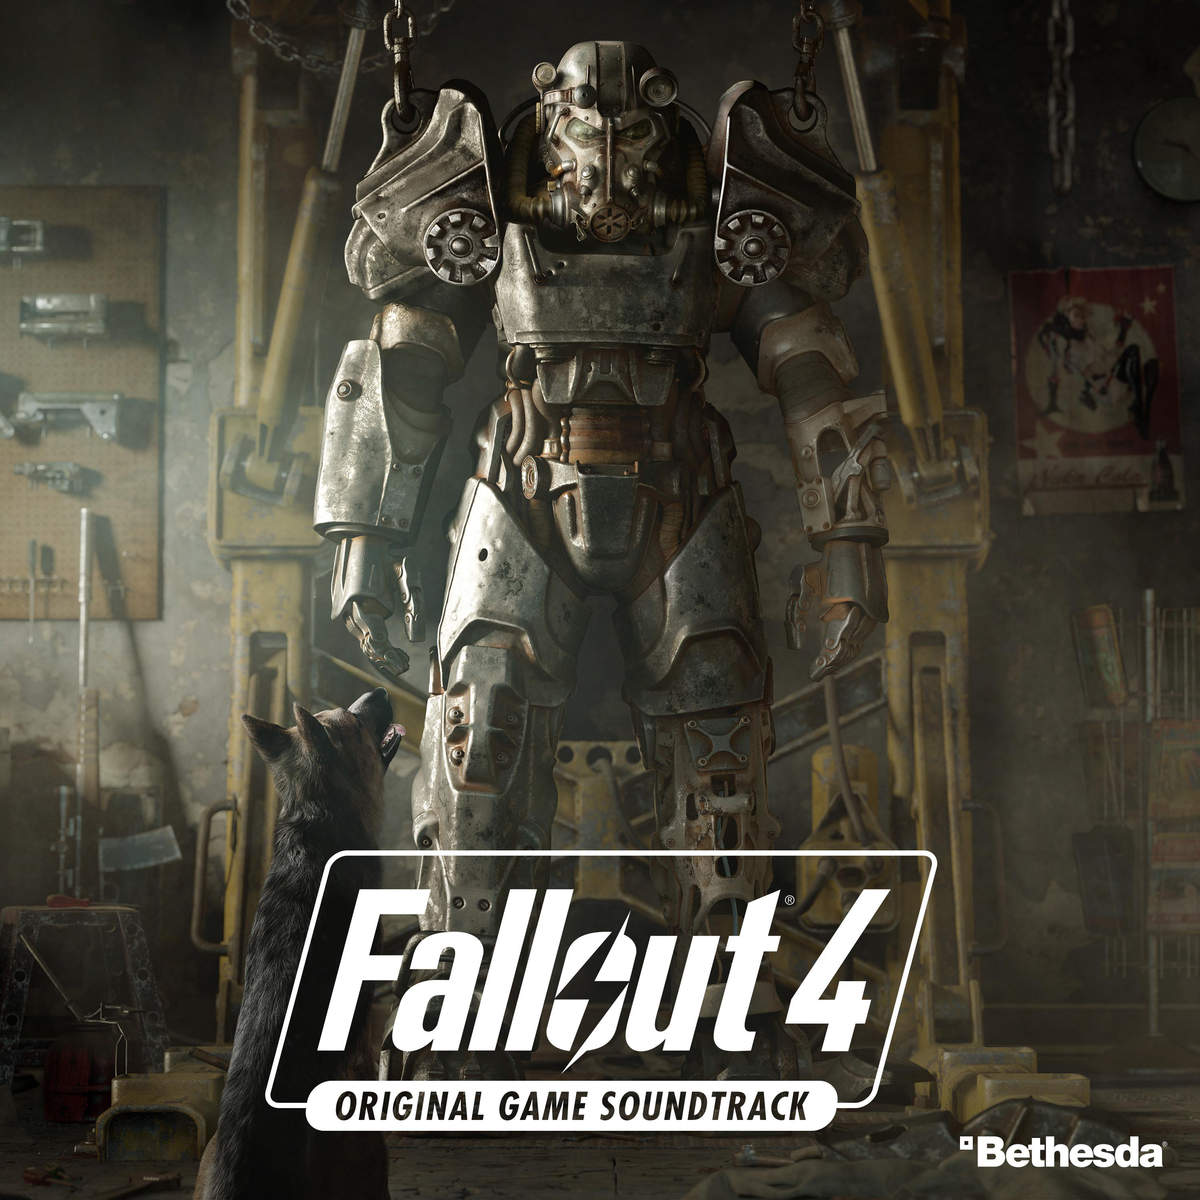 Fallout 4 soundtrack | Fallout Wiki | FANDOM powered by Wikia